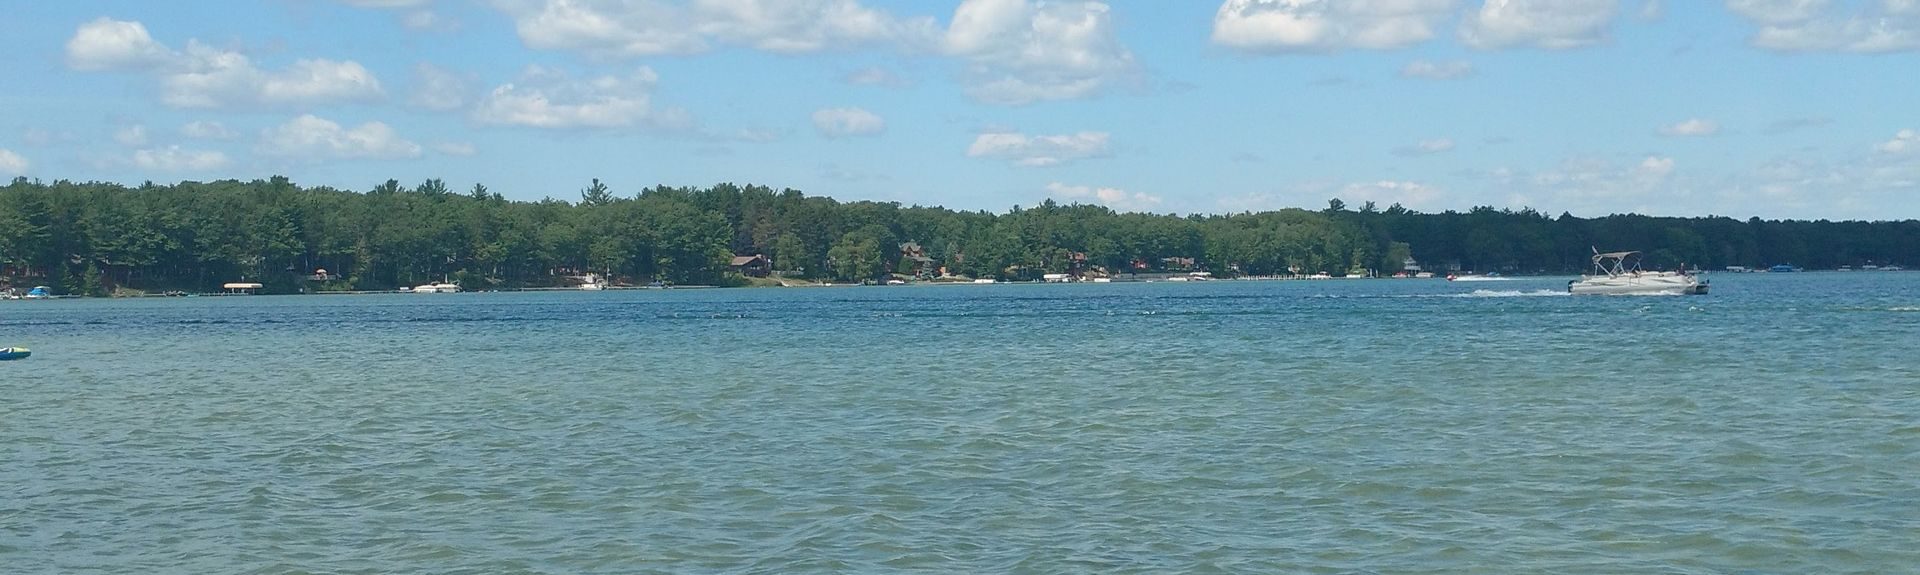 Little Bear Lake, US vacation rentals: Houses & more | HomeAway